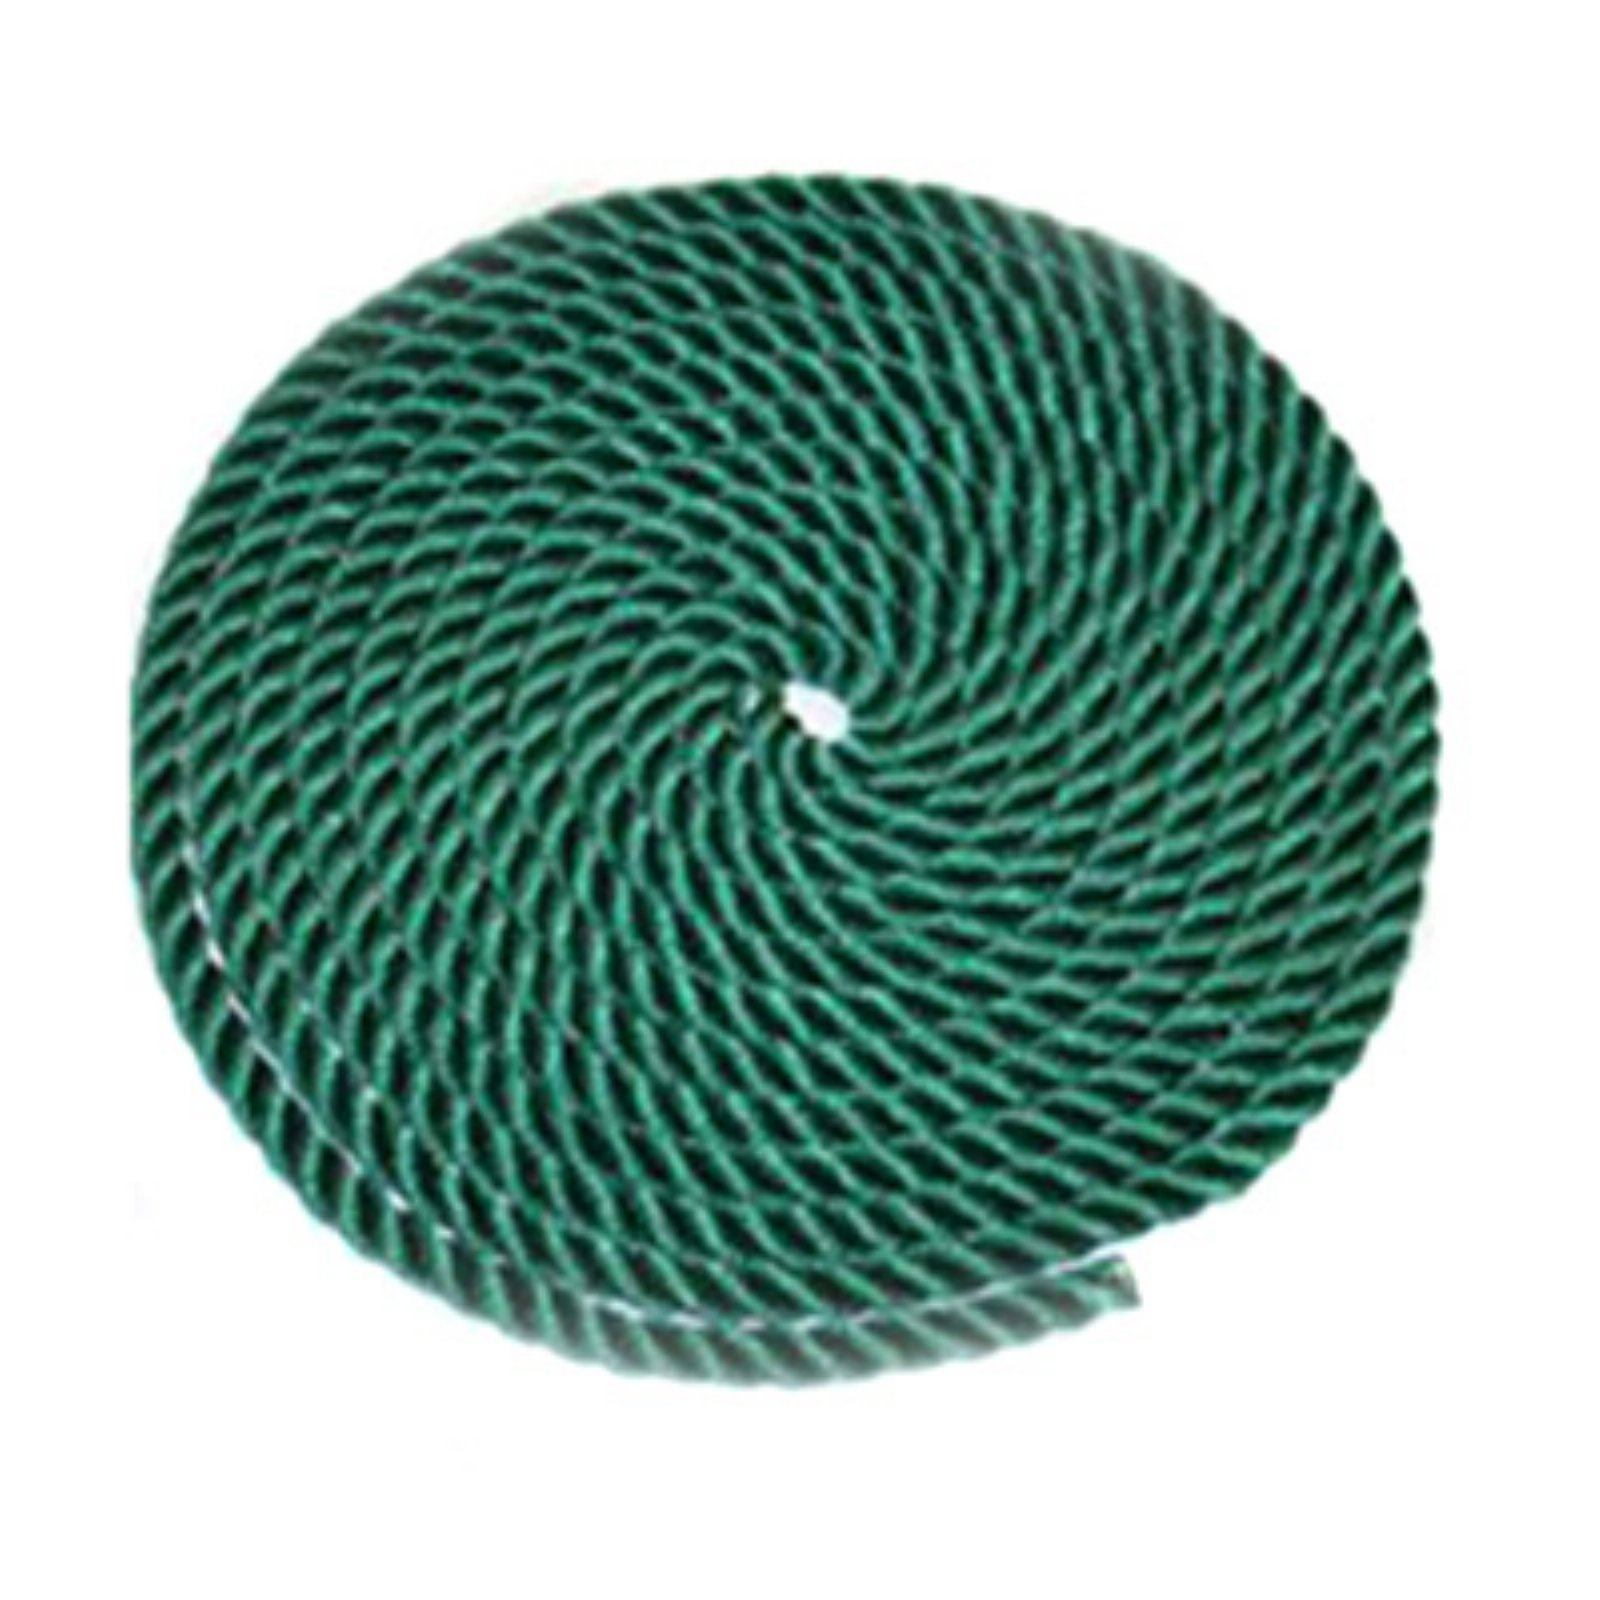 Eastern Jungle Gym 0.63 in. Multi Use Braided Playground Rope 22 ft. Long